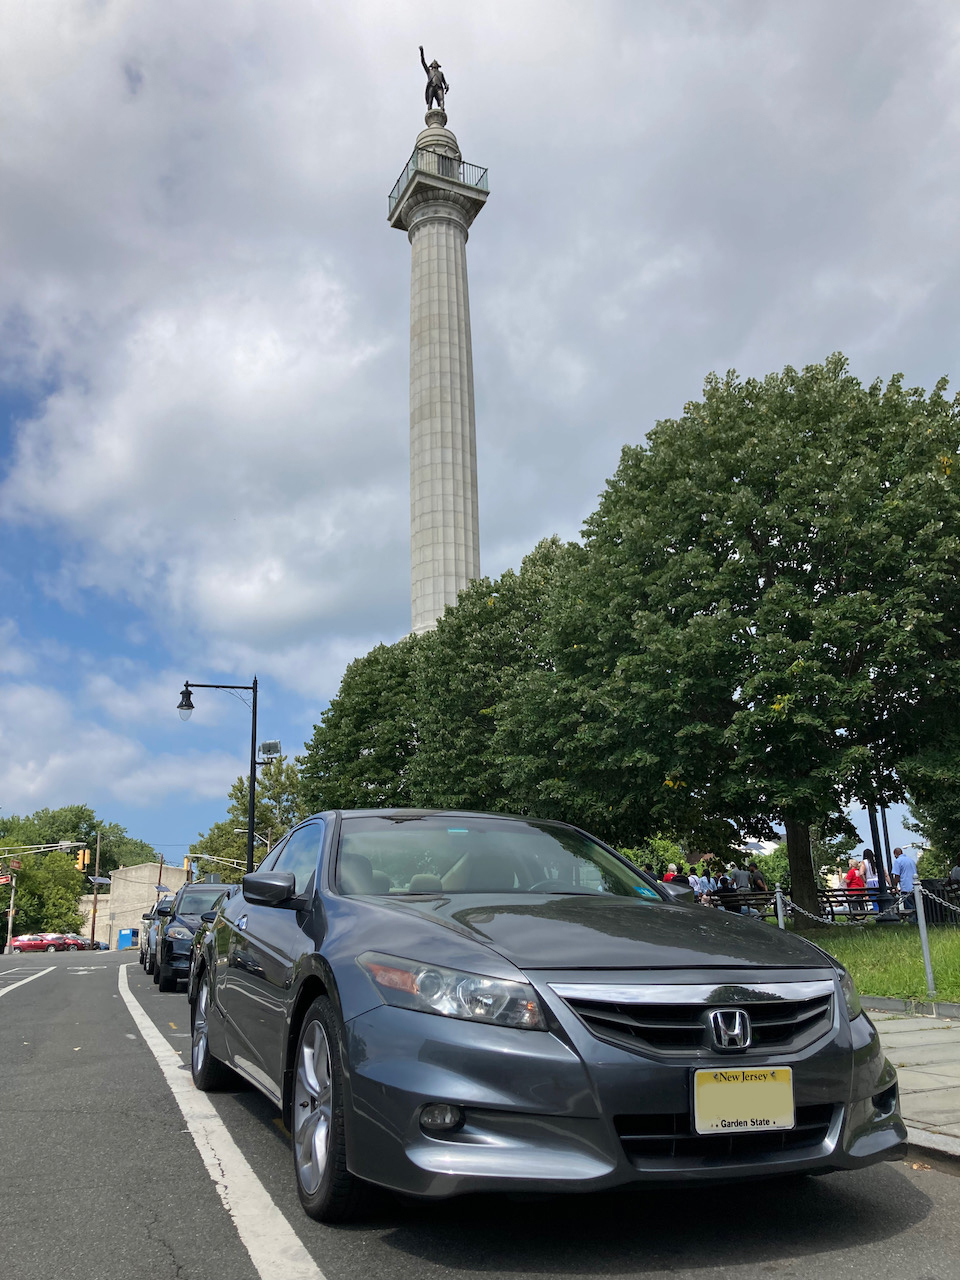 2012 Honda Accord, parked in front of Trenton Battle Monument.